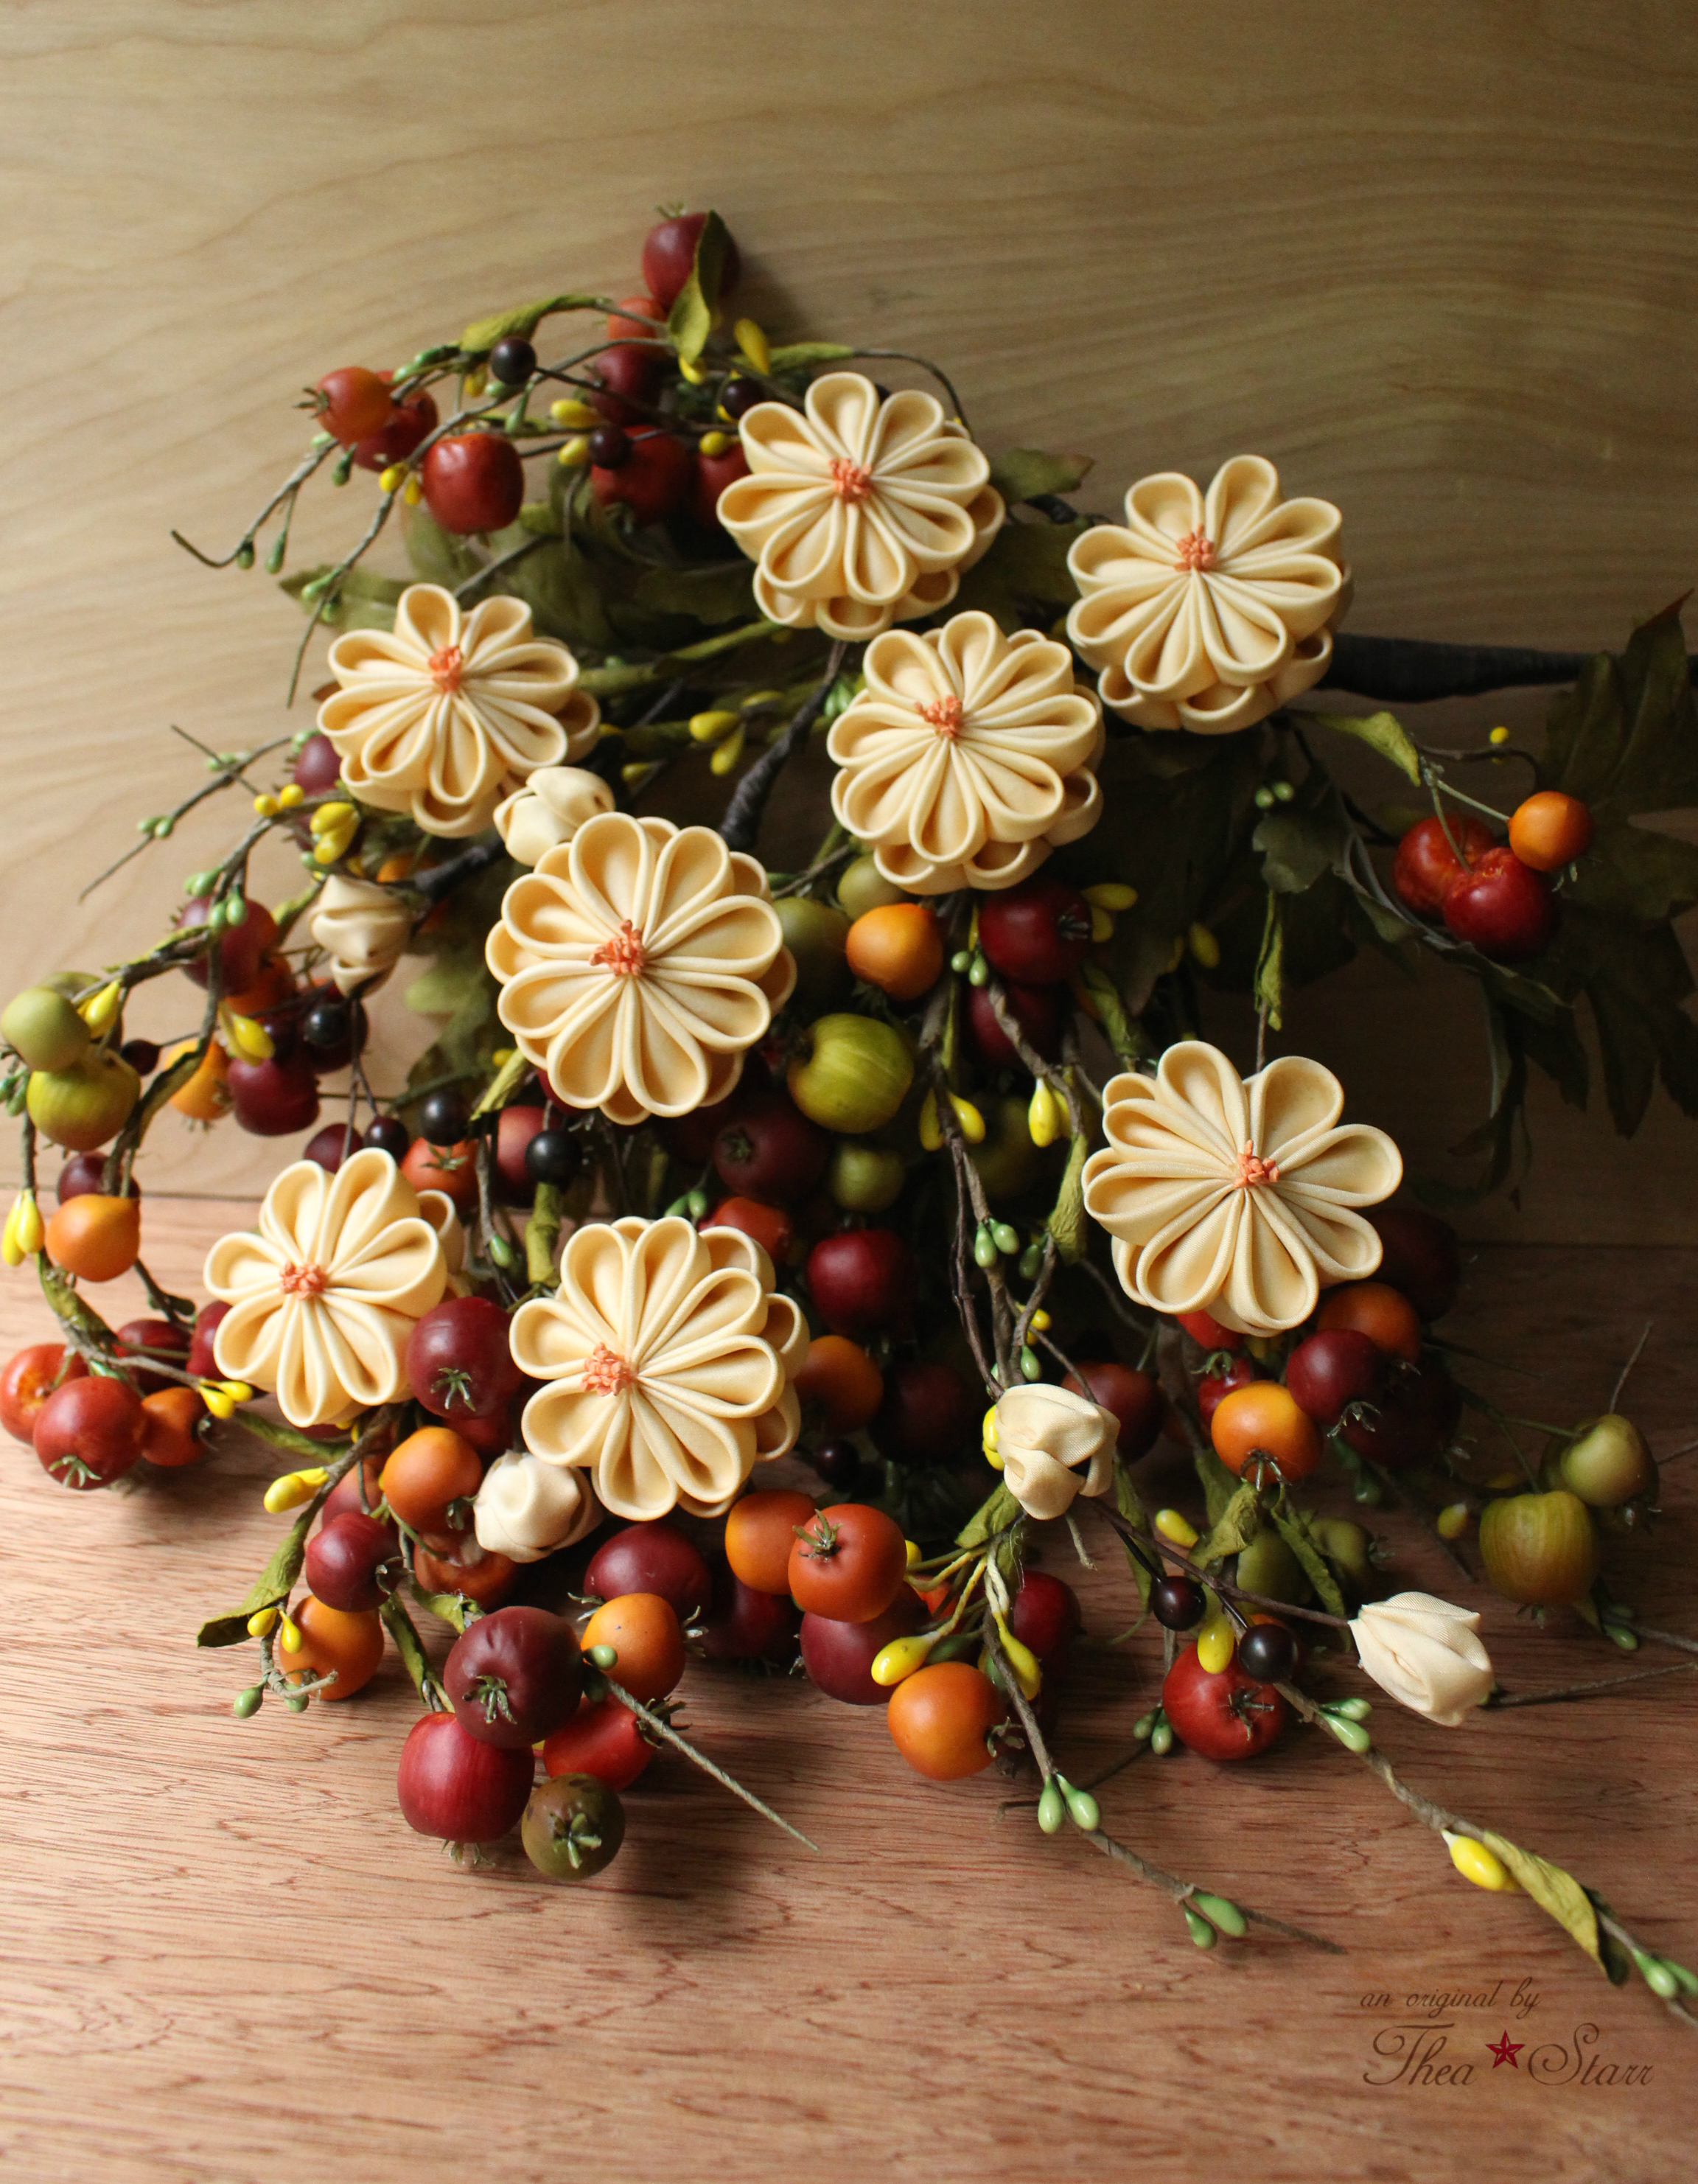 Autumn Harvest Bouquet - Pageant style - will be available at  The Handmade Showroom  later this month.